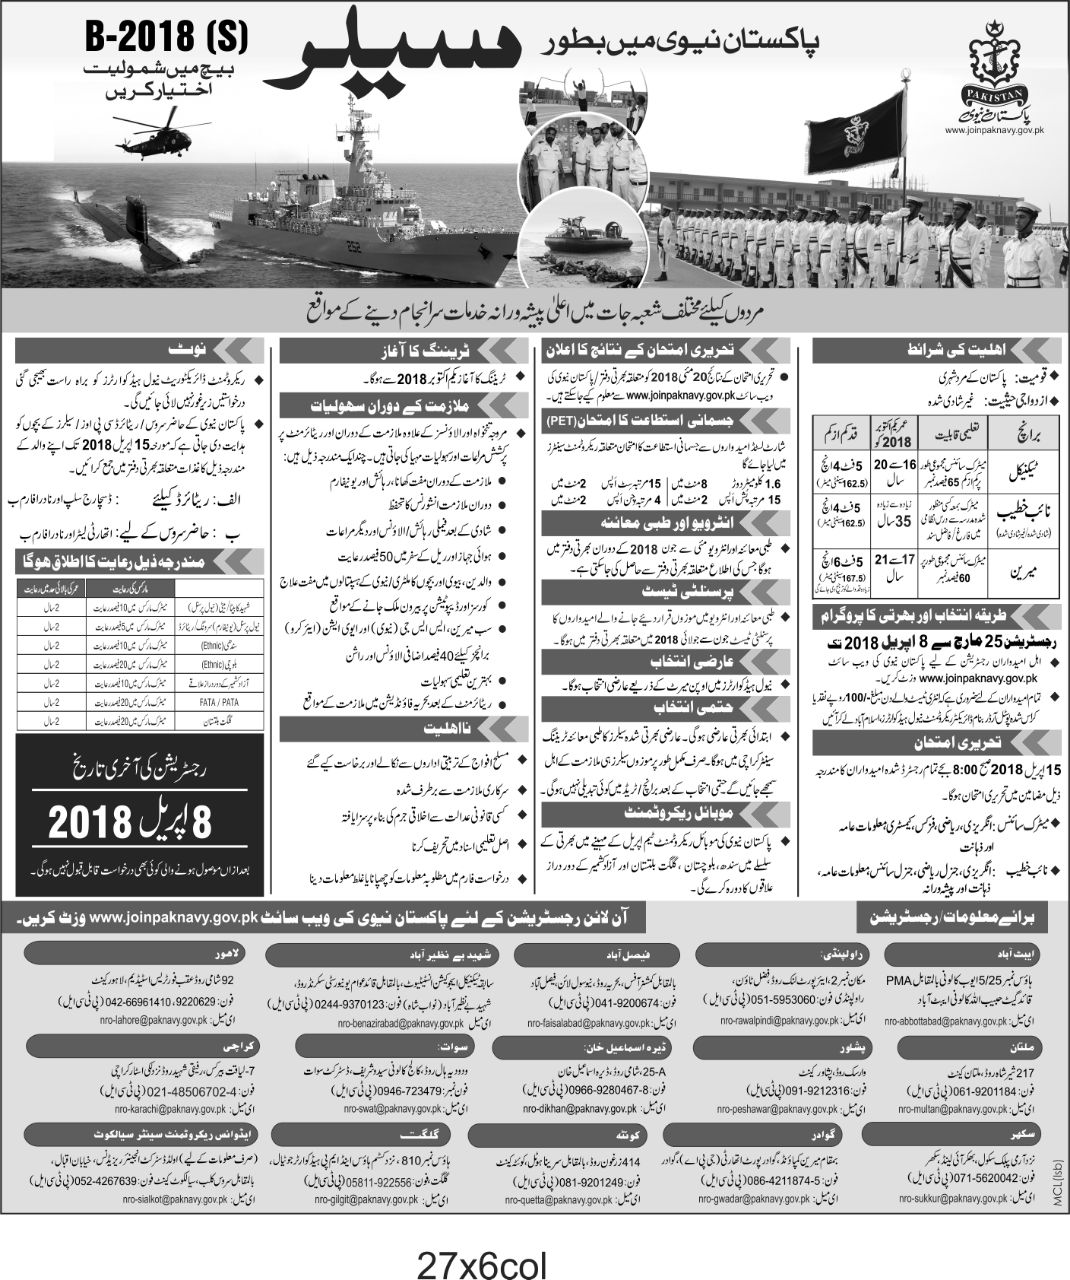 Jobs in Pakistan Navy as Marine, Naib Khateeb and Technical - Sailor Batch B-2018 (S)